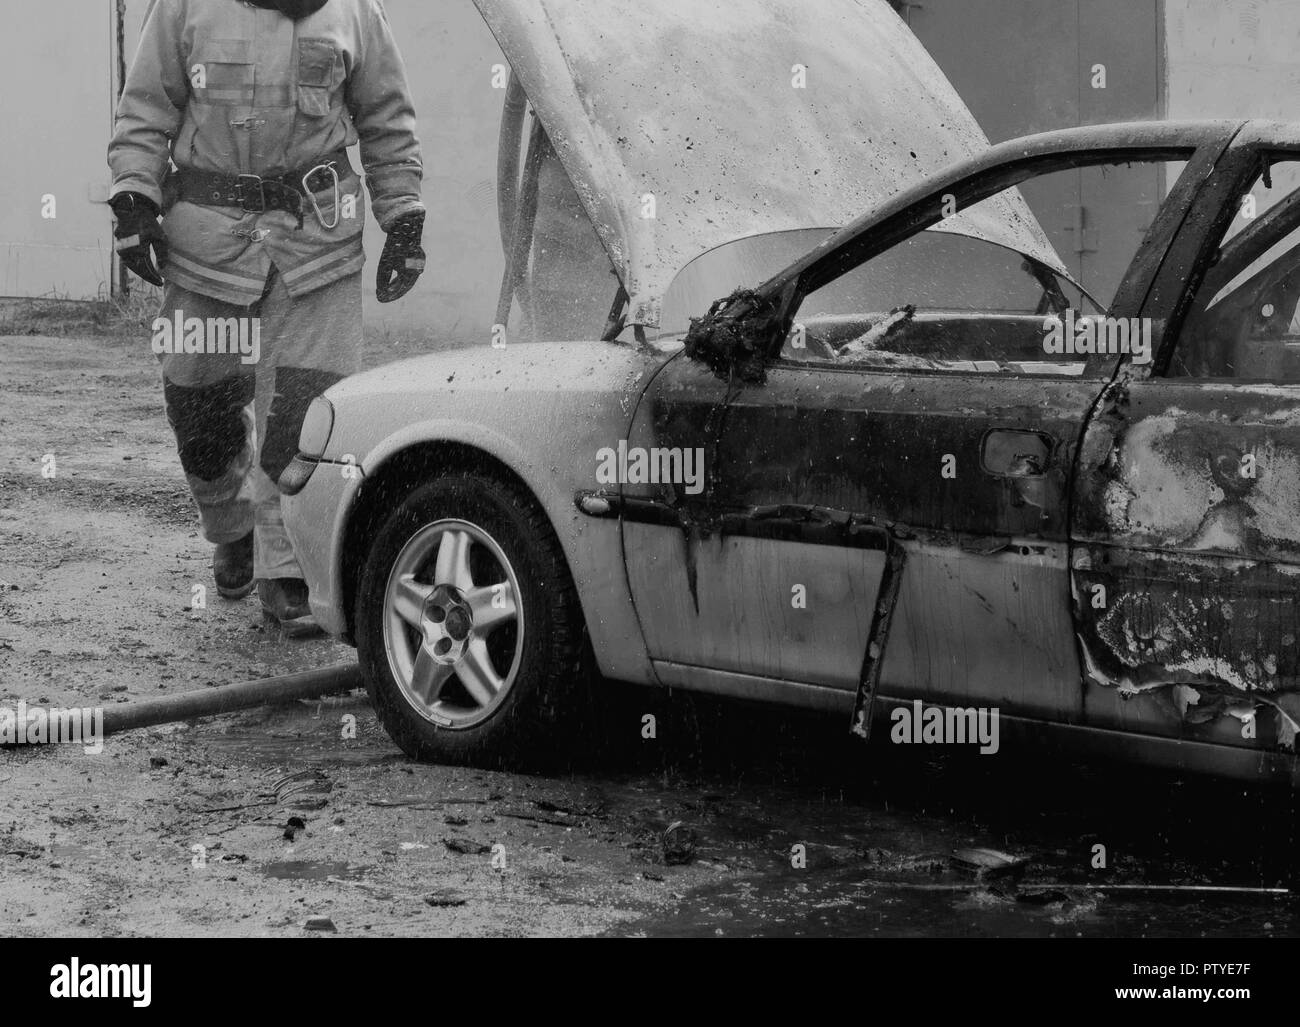 Firefighters extinguish a burning car with water, fire, extinguish, black and white - Stock Image